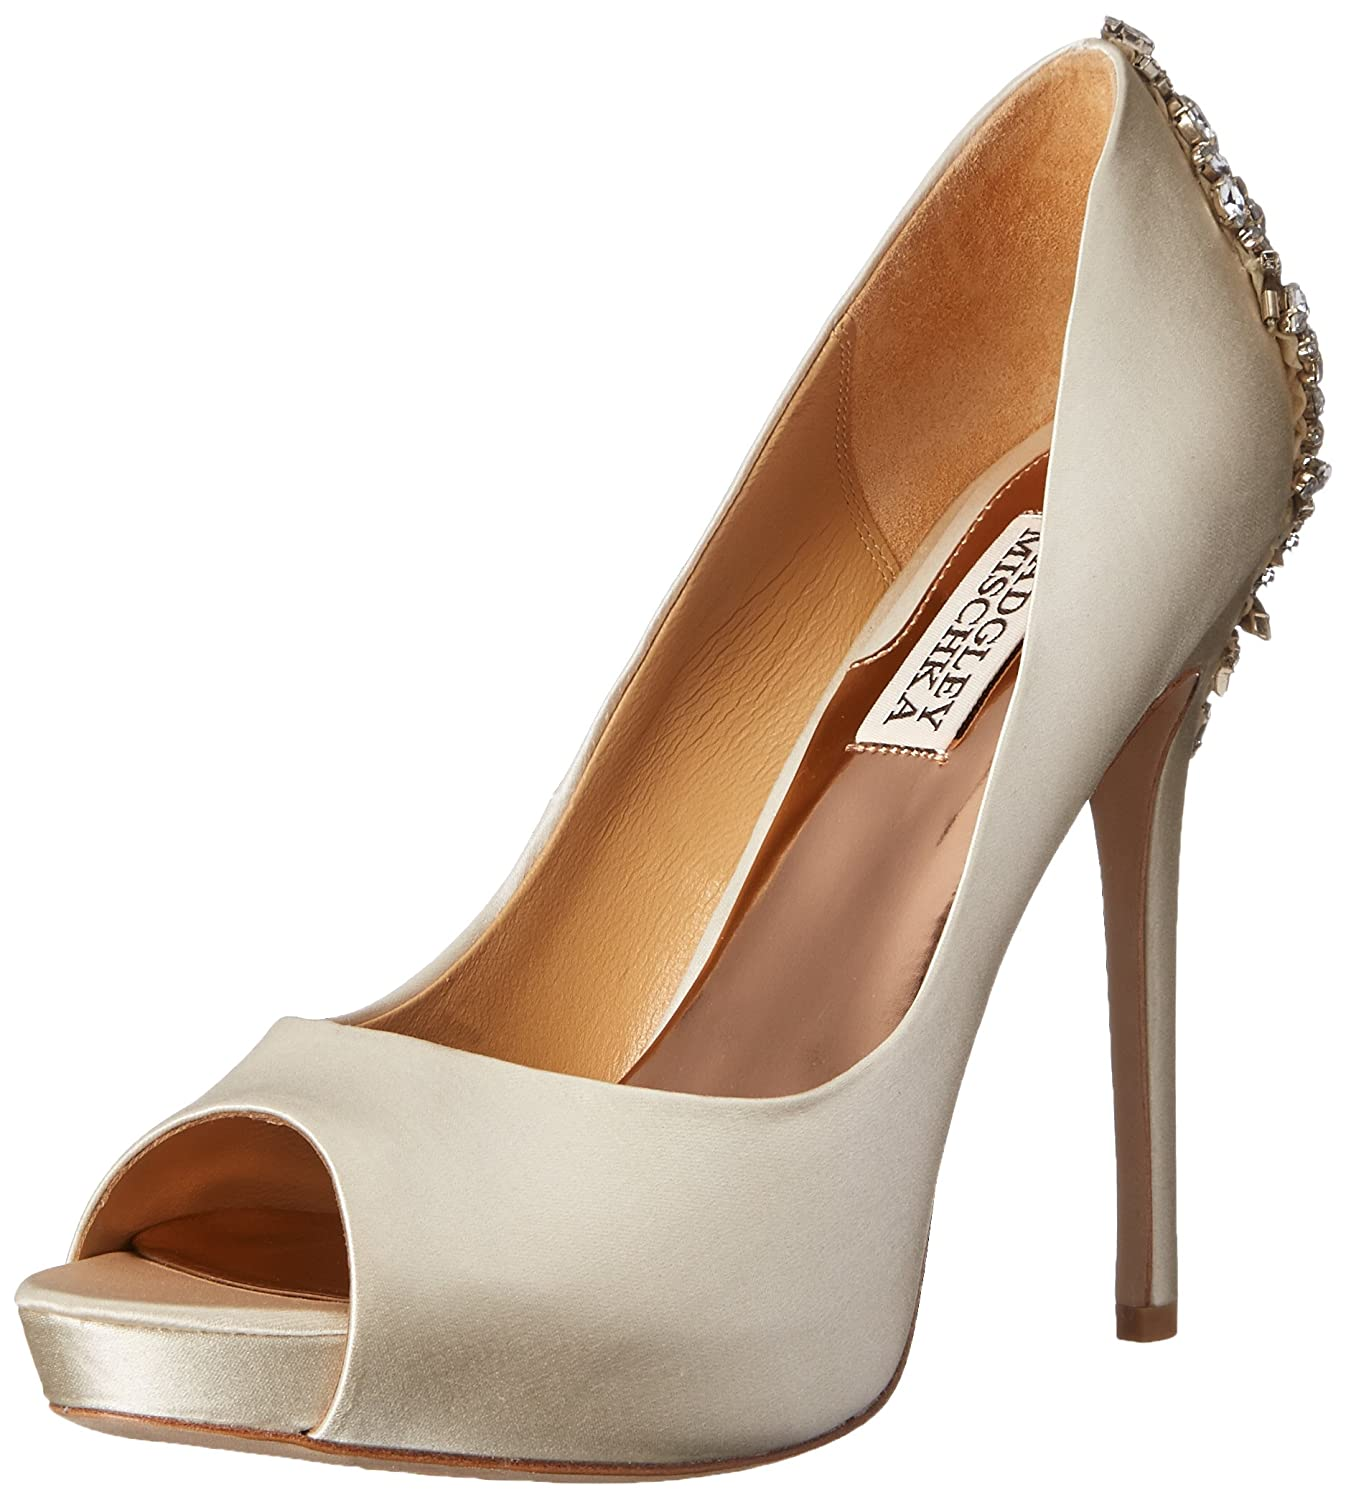 c90553ca1 Amazon.com: Badgley Mischka Women's Kiara Platform Pump: Badgley Mischka:  Shoes